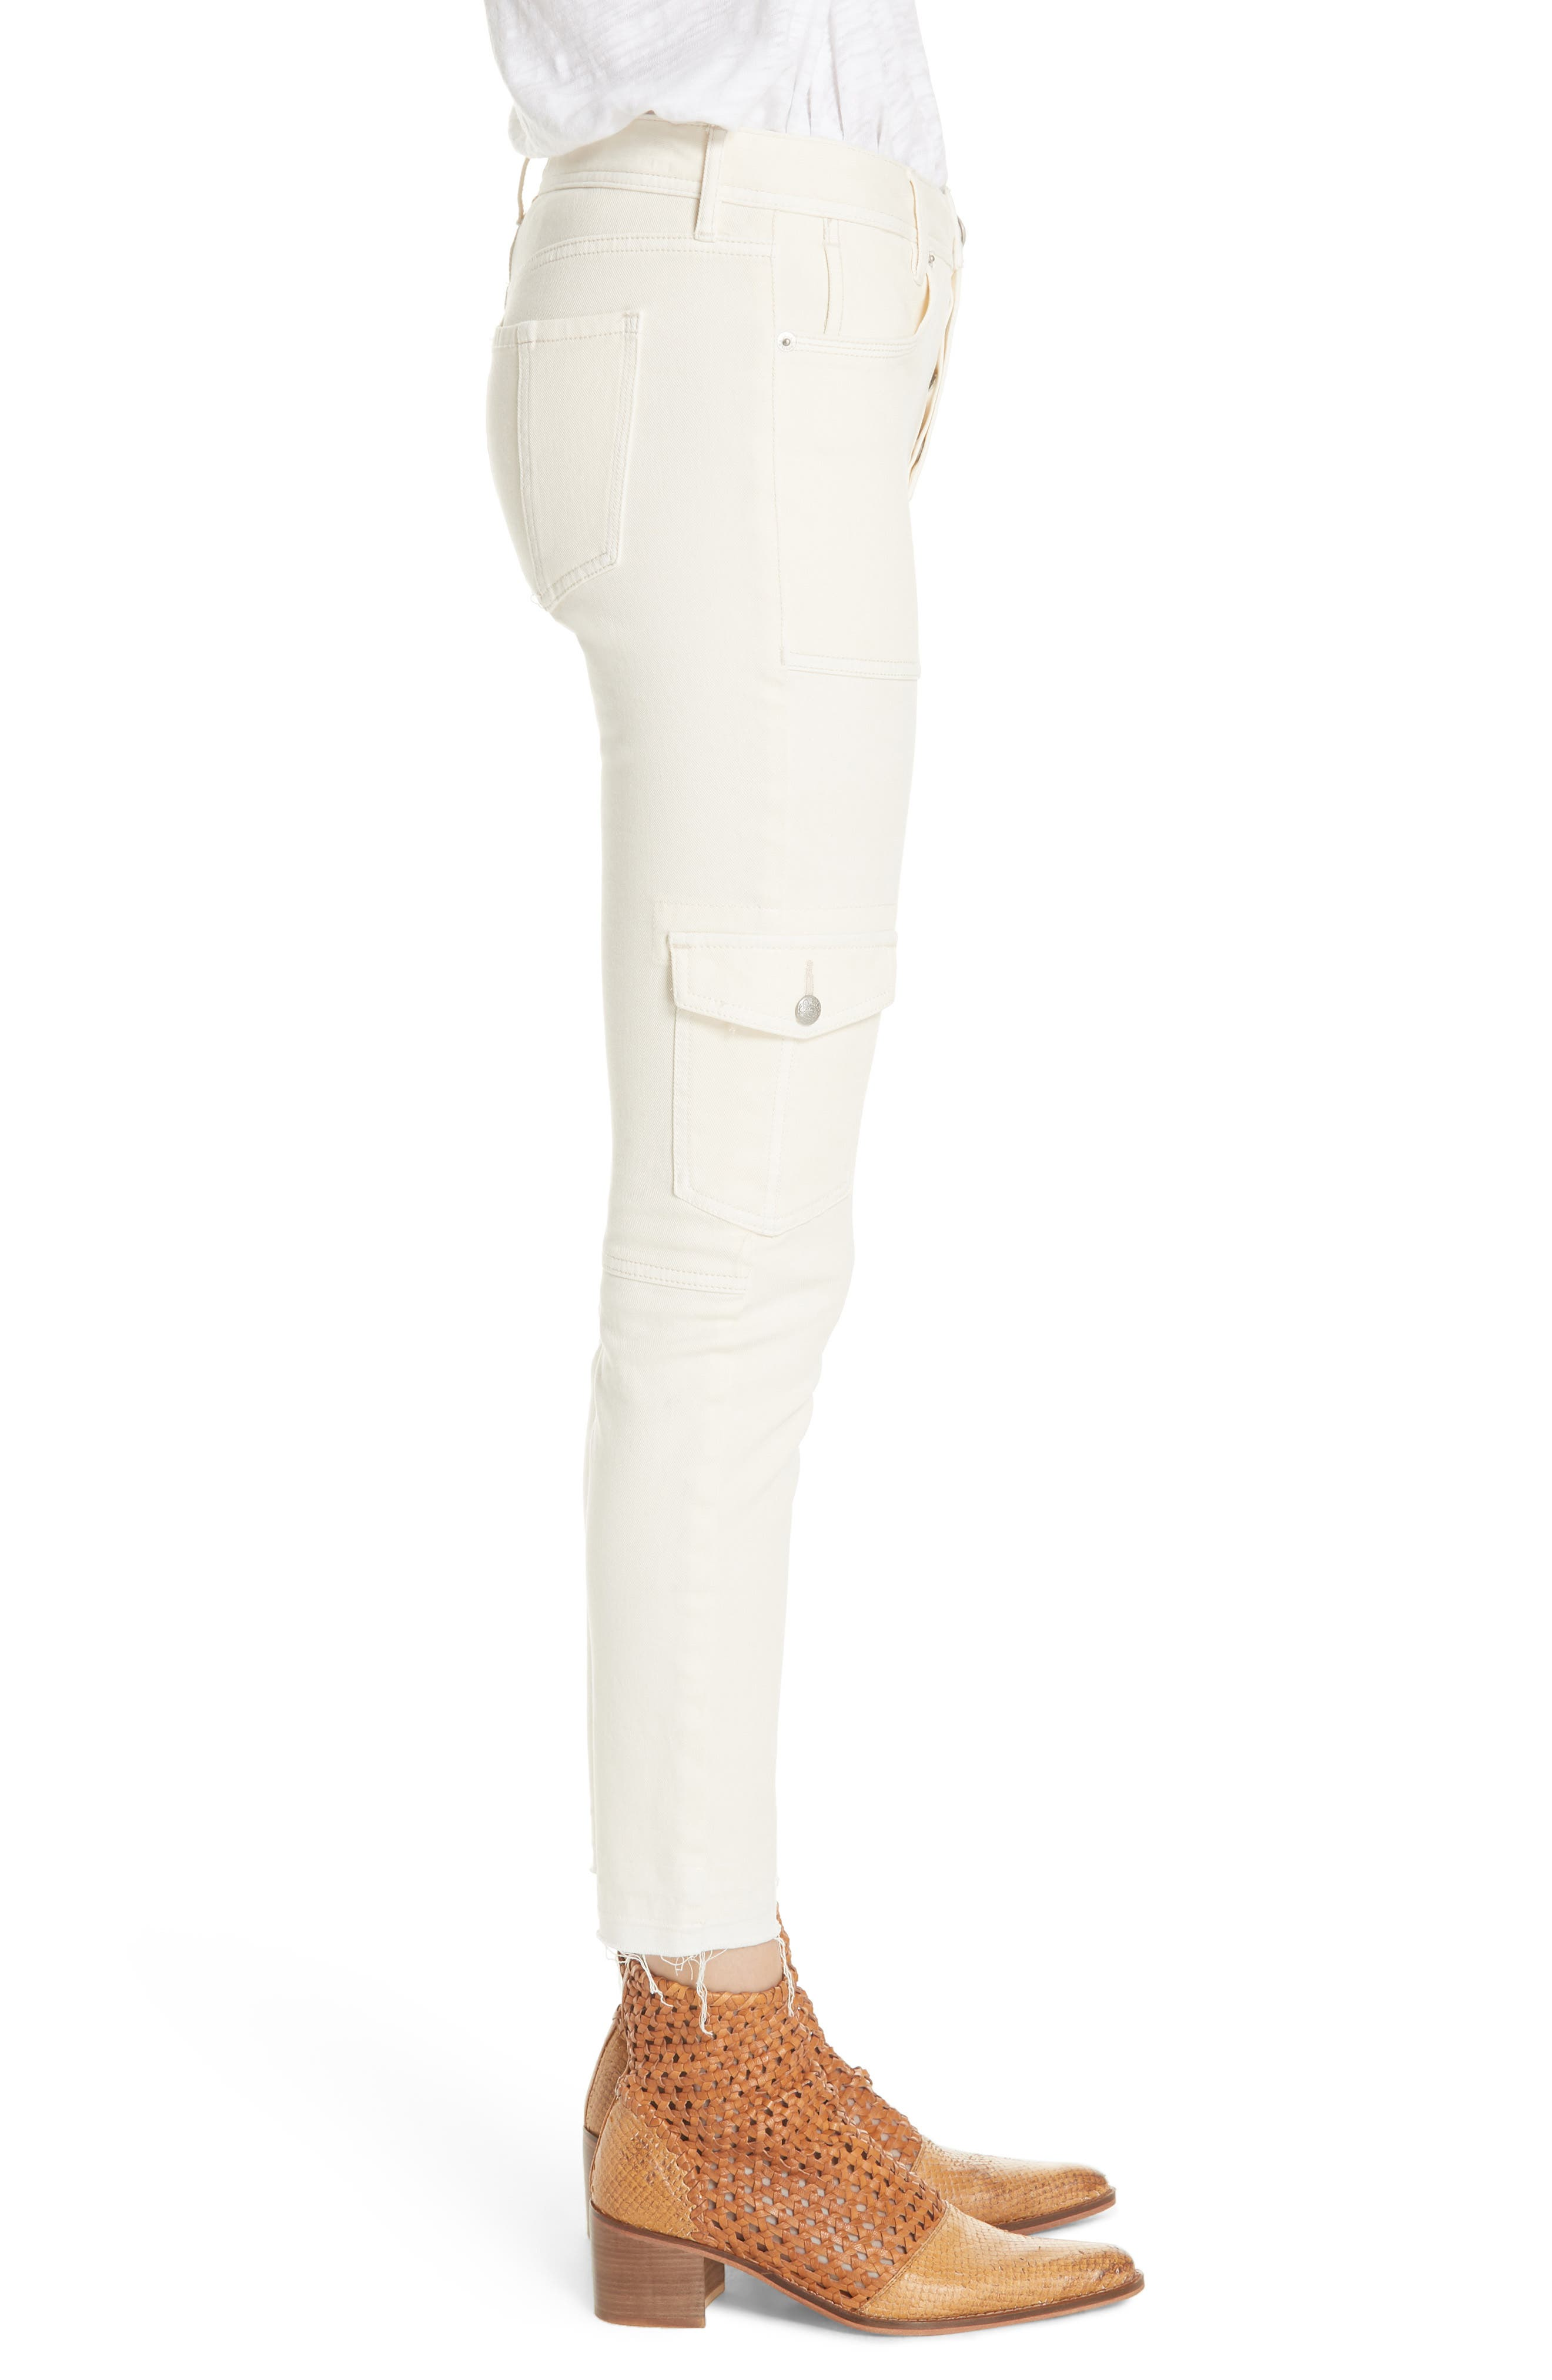 FREE PEOPLE,                             Utility Skinny Jeans,                             Alternate thumbnail 3, color,                             252